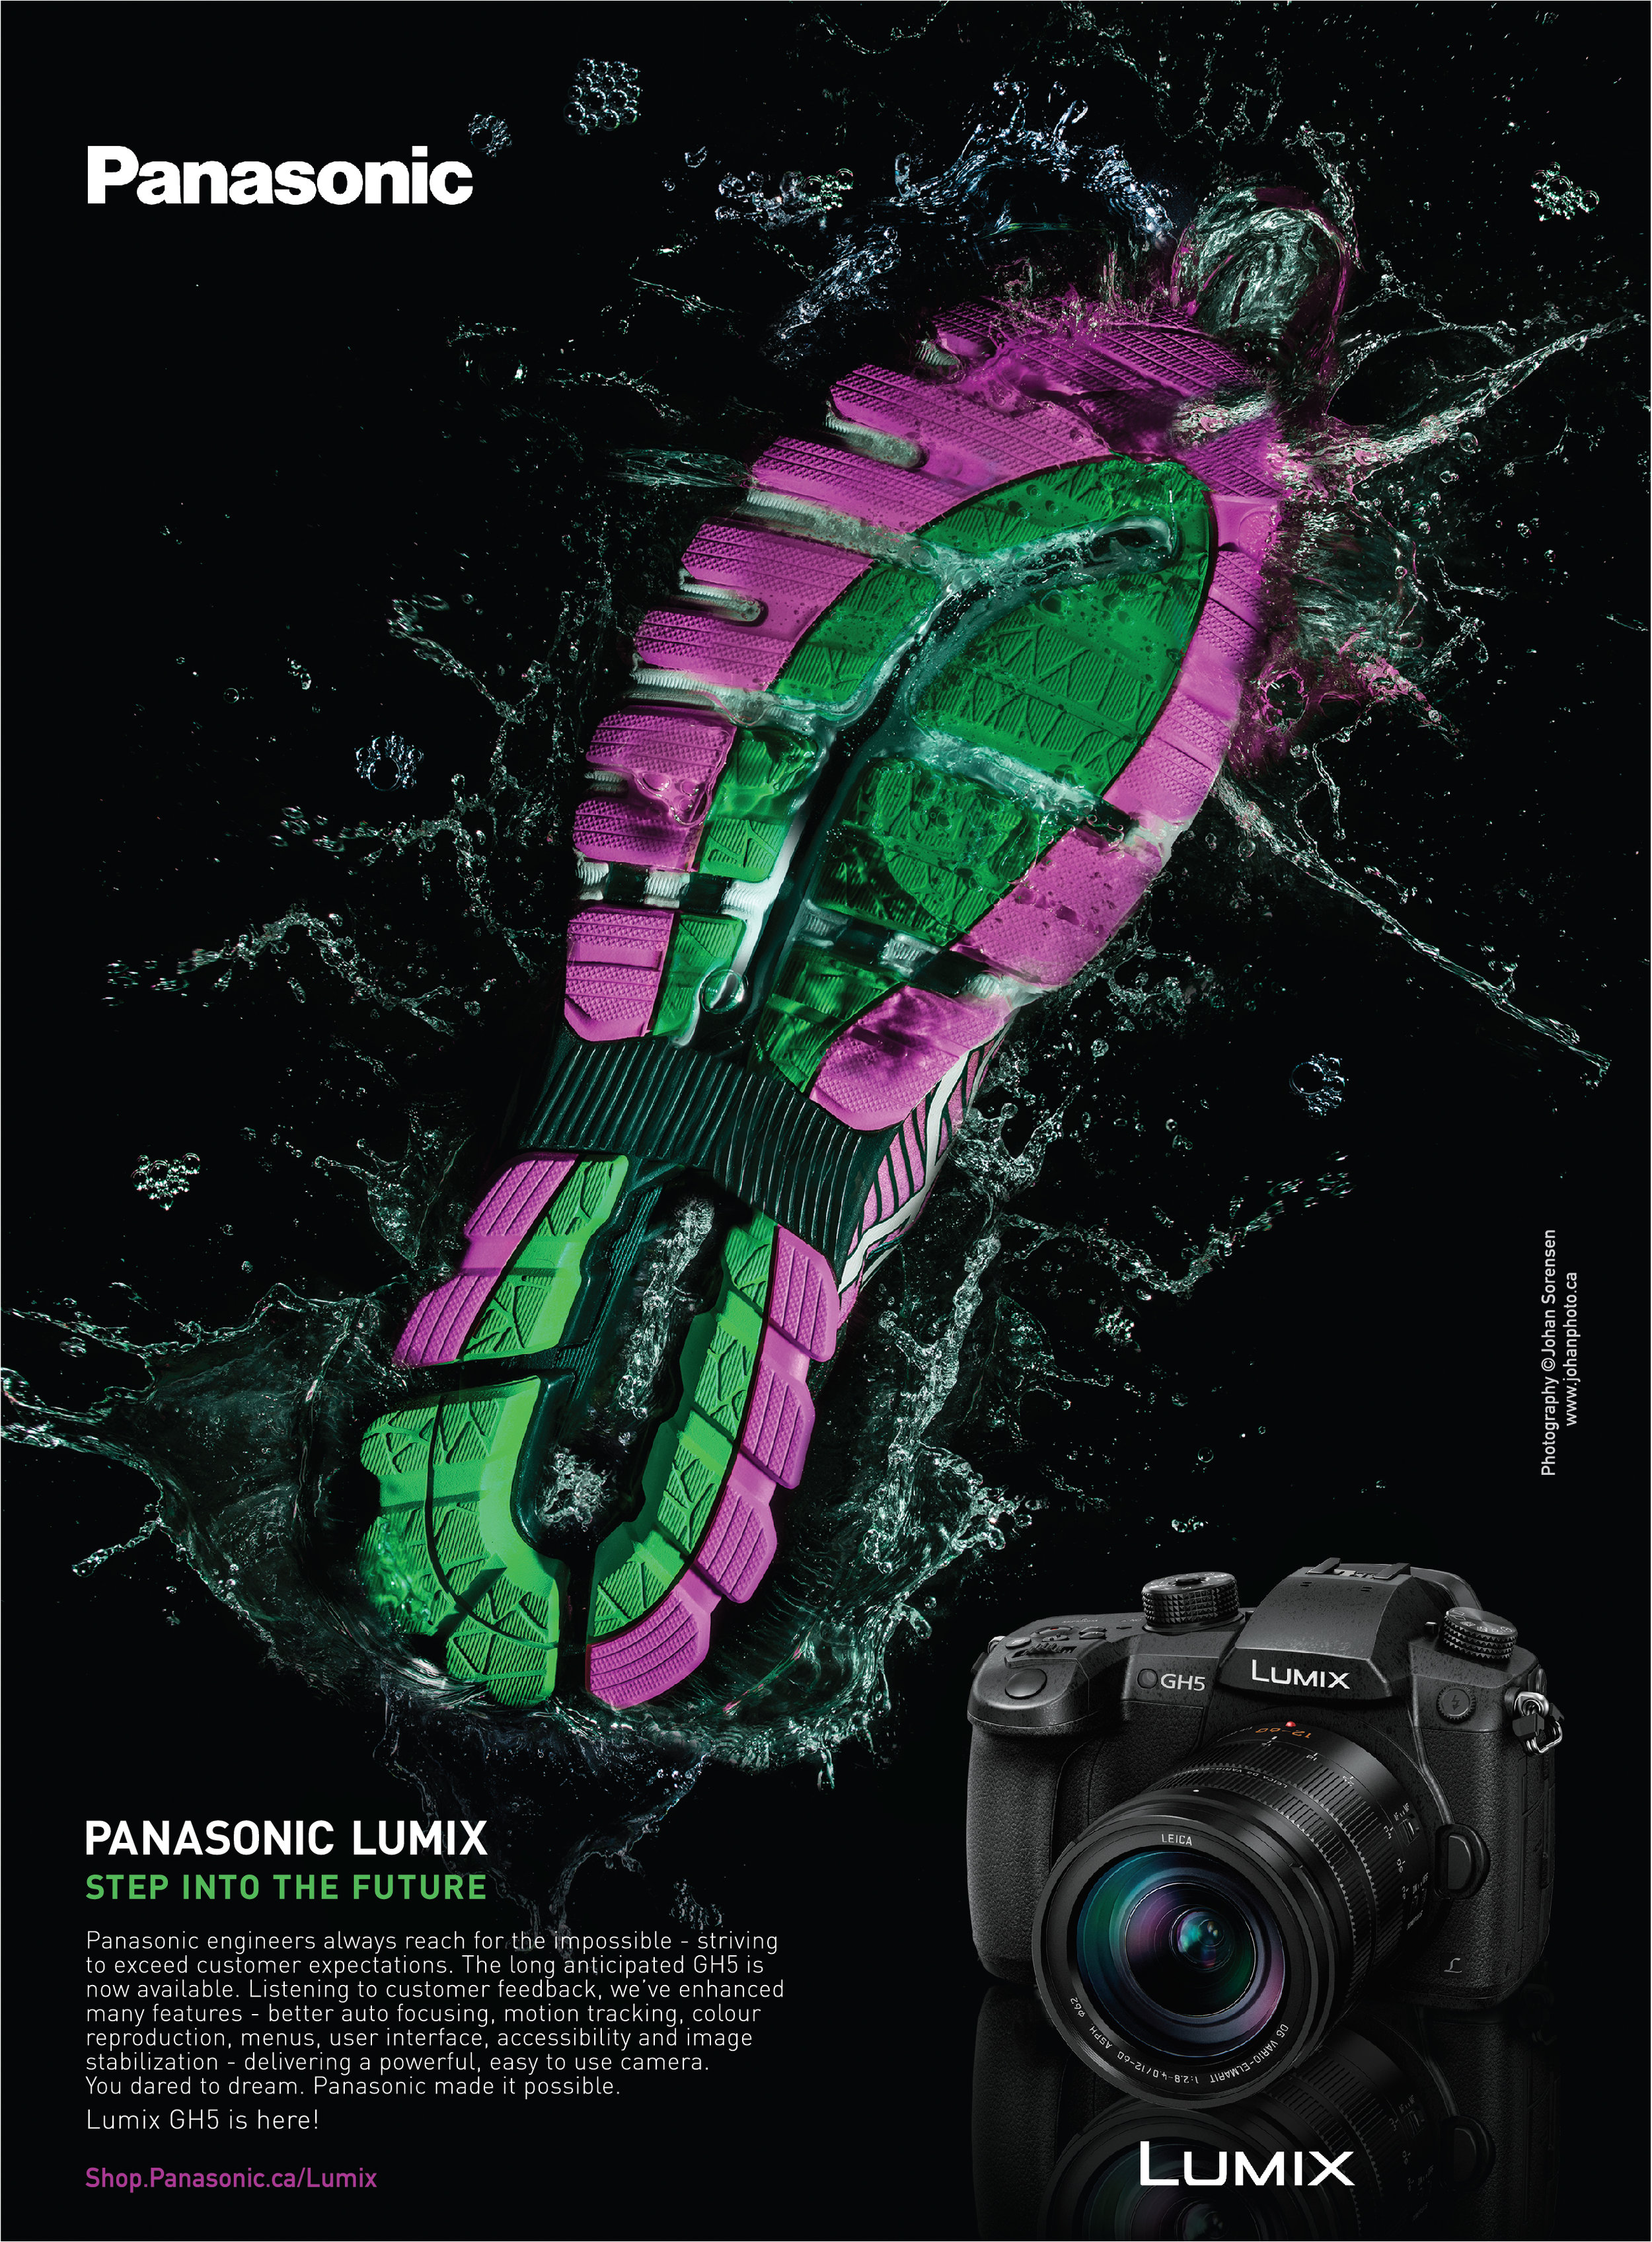 Panasonic Lumix Advertisement